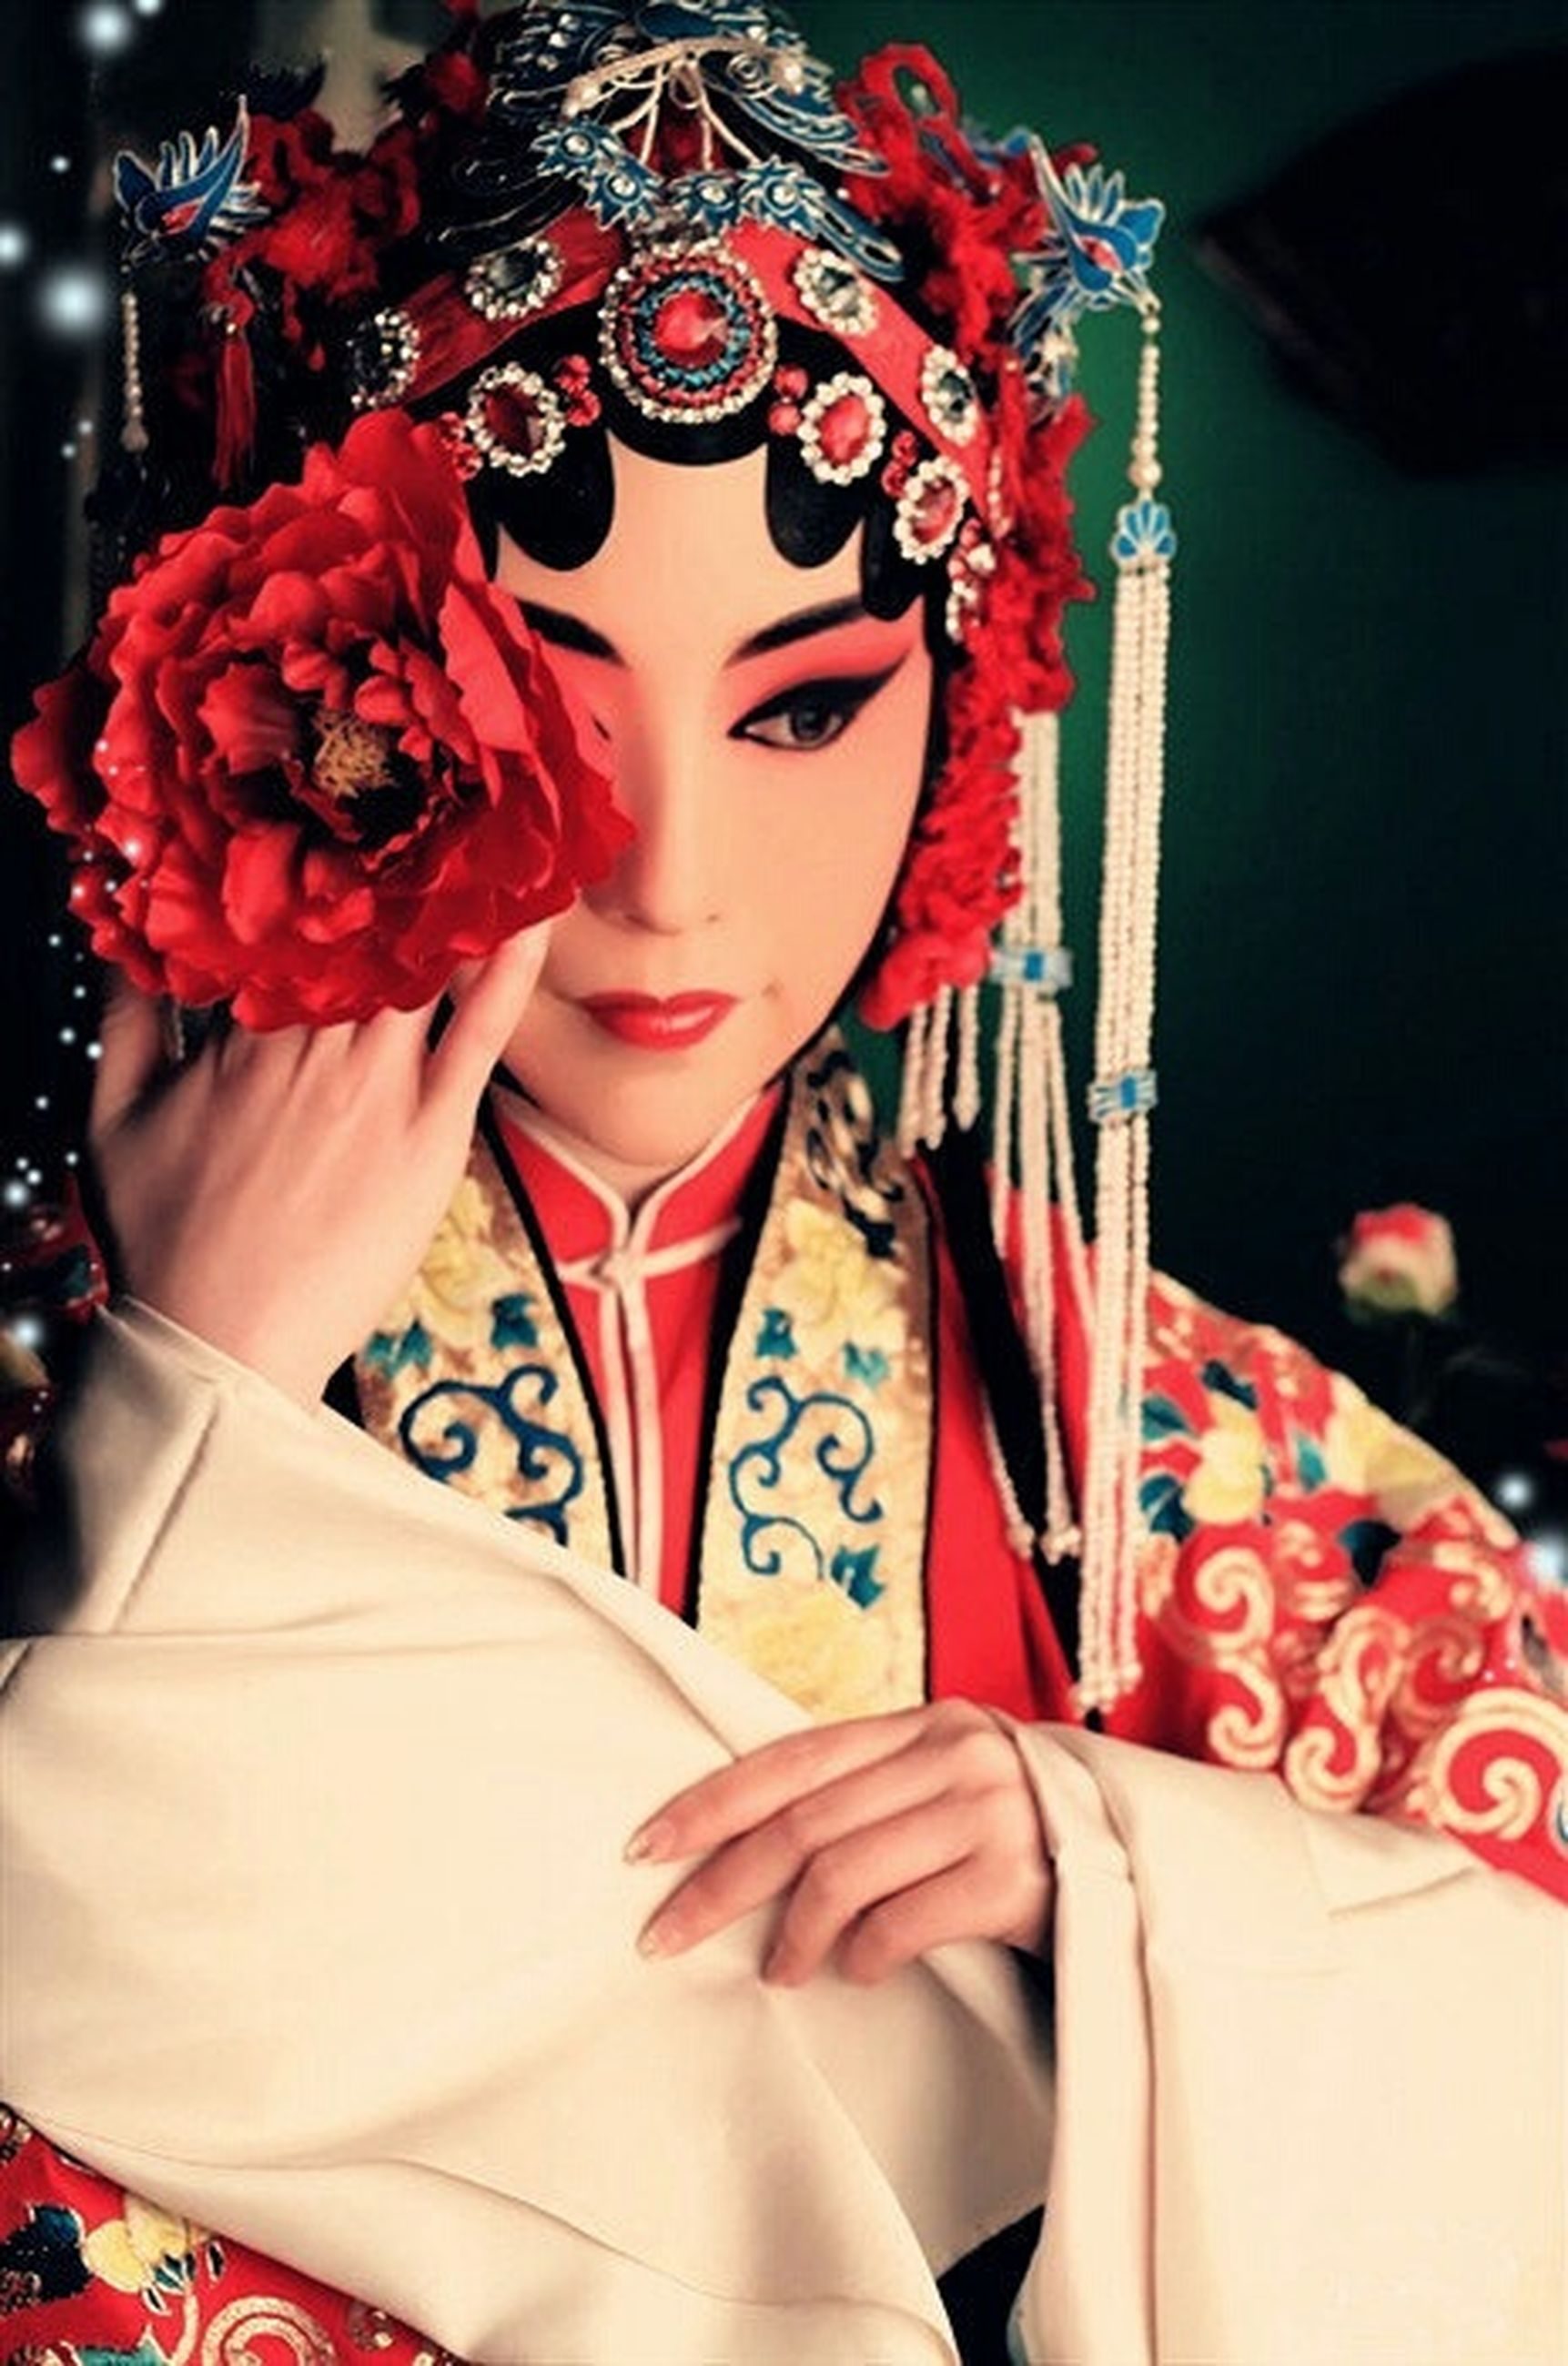 indoors, tradition, lifestyles, red, celebration, person, leisure activity, cultures, holding, art, creativity, fashion, art and craft, religion, close-up, decoration, front view